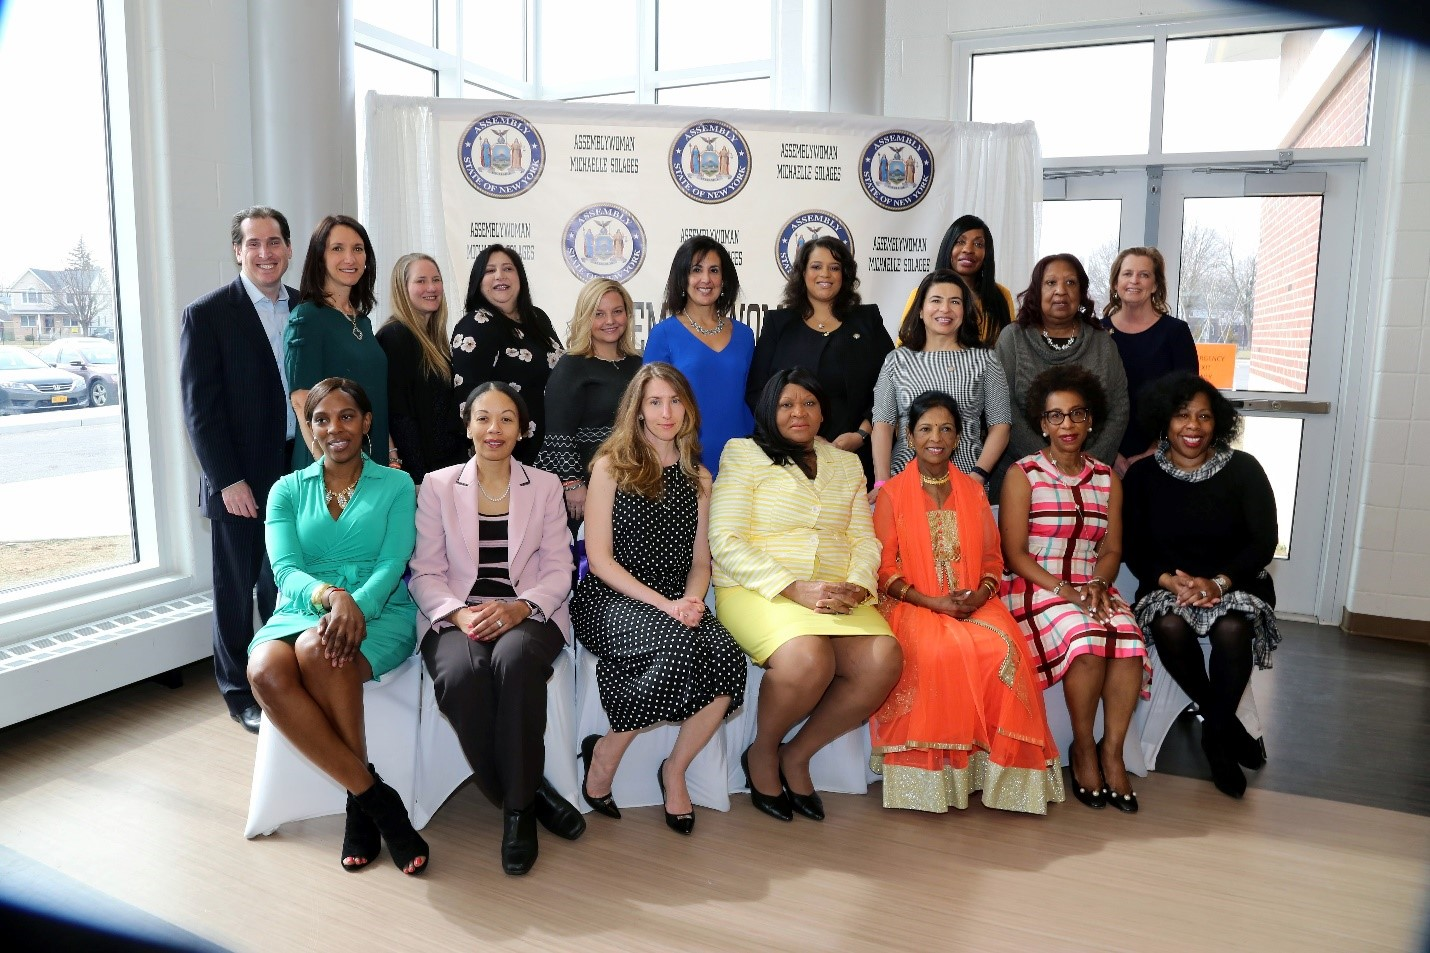 Assemblywoman Solages honors a group of the dynamic woman from the 22nd Assembly District for the 2019 Women of Distinction Ceremony at Sewanhaka High School.